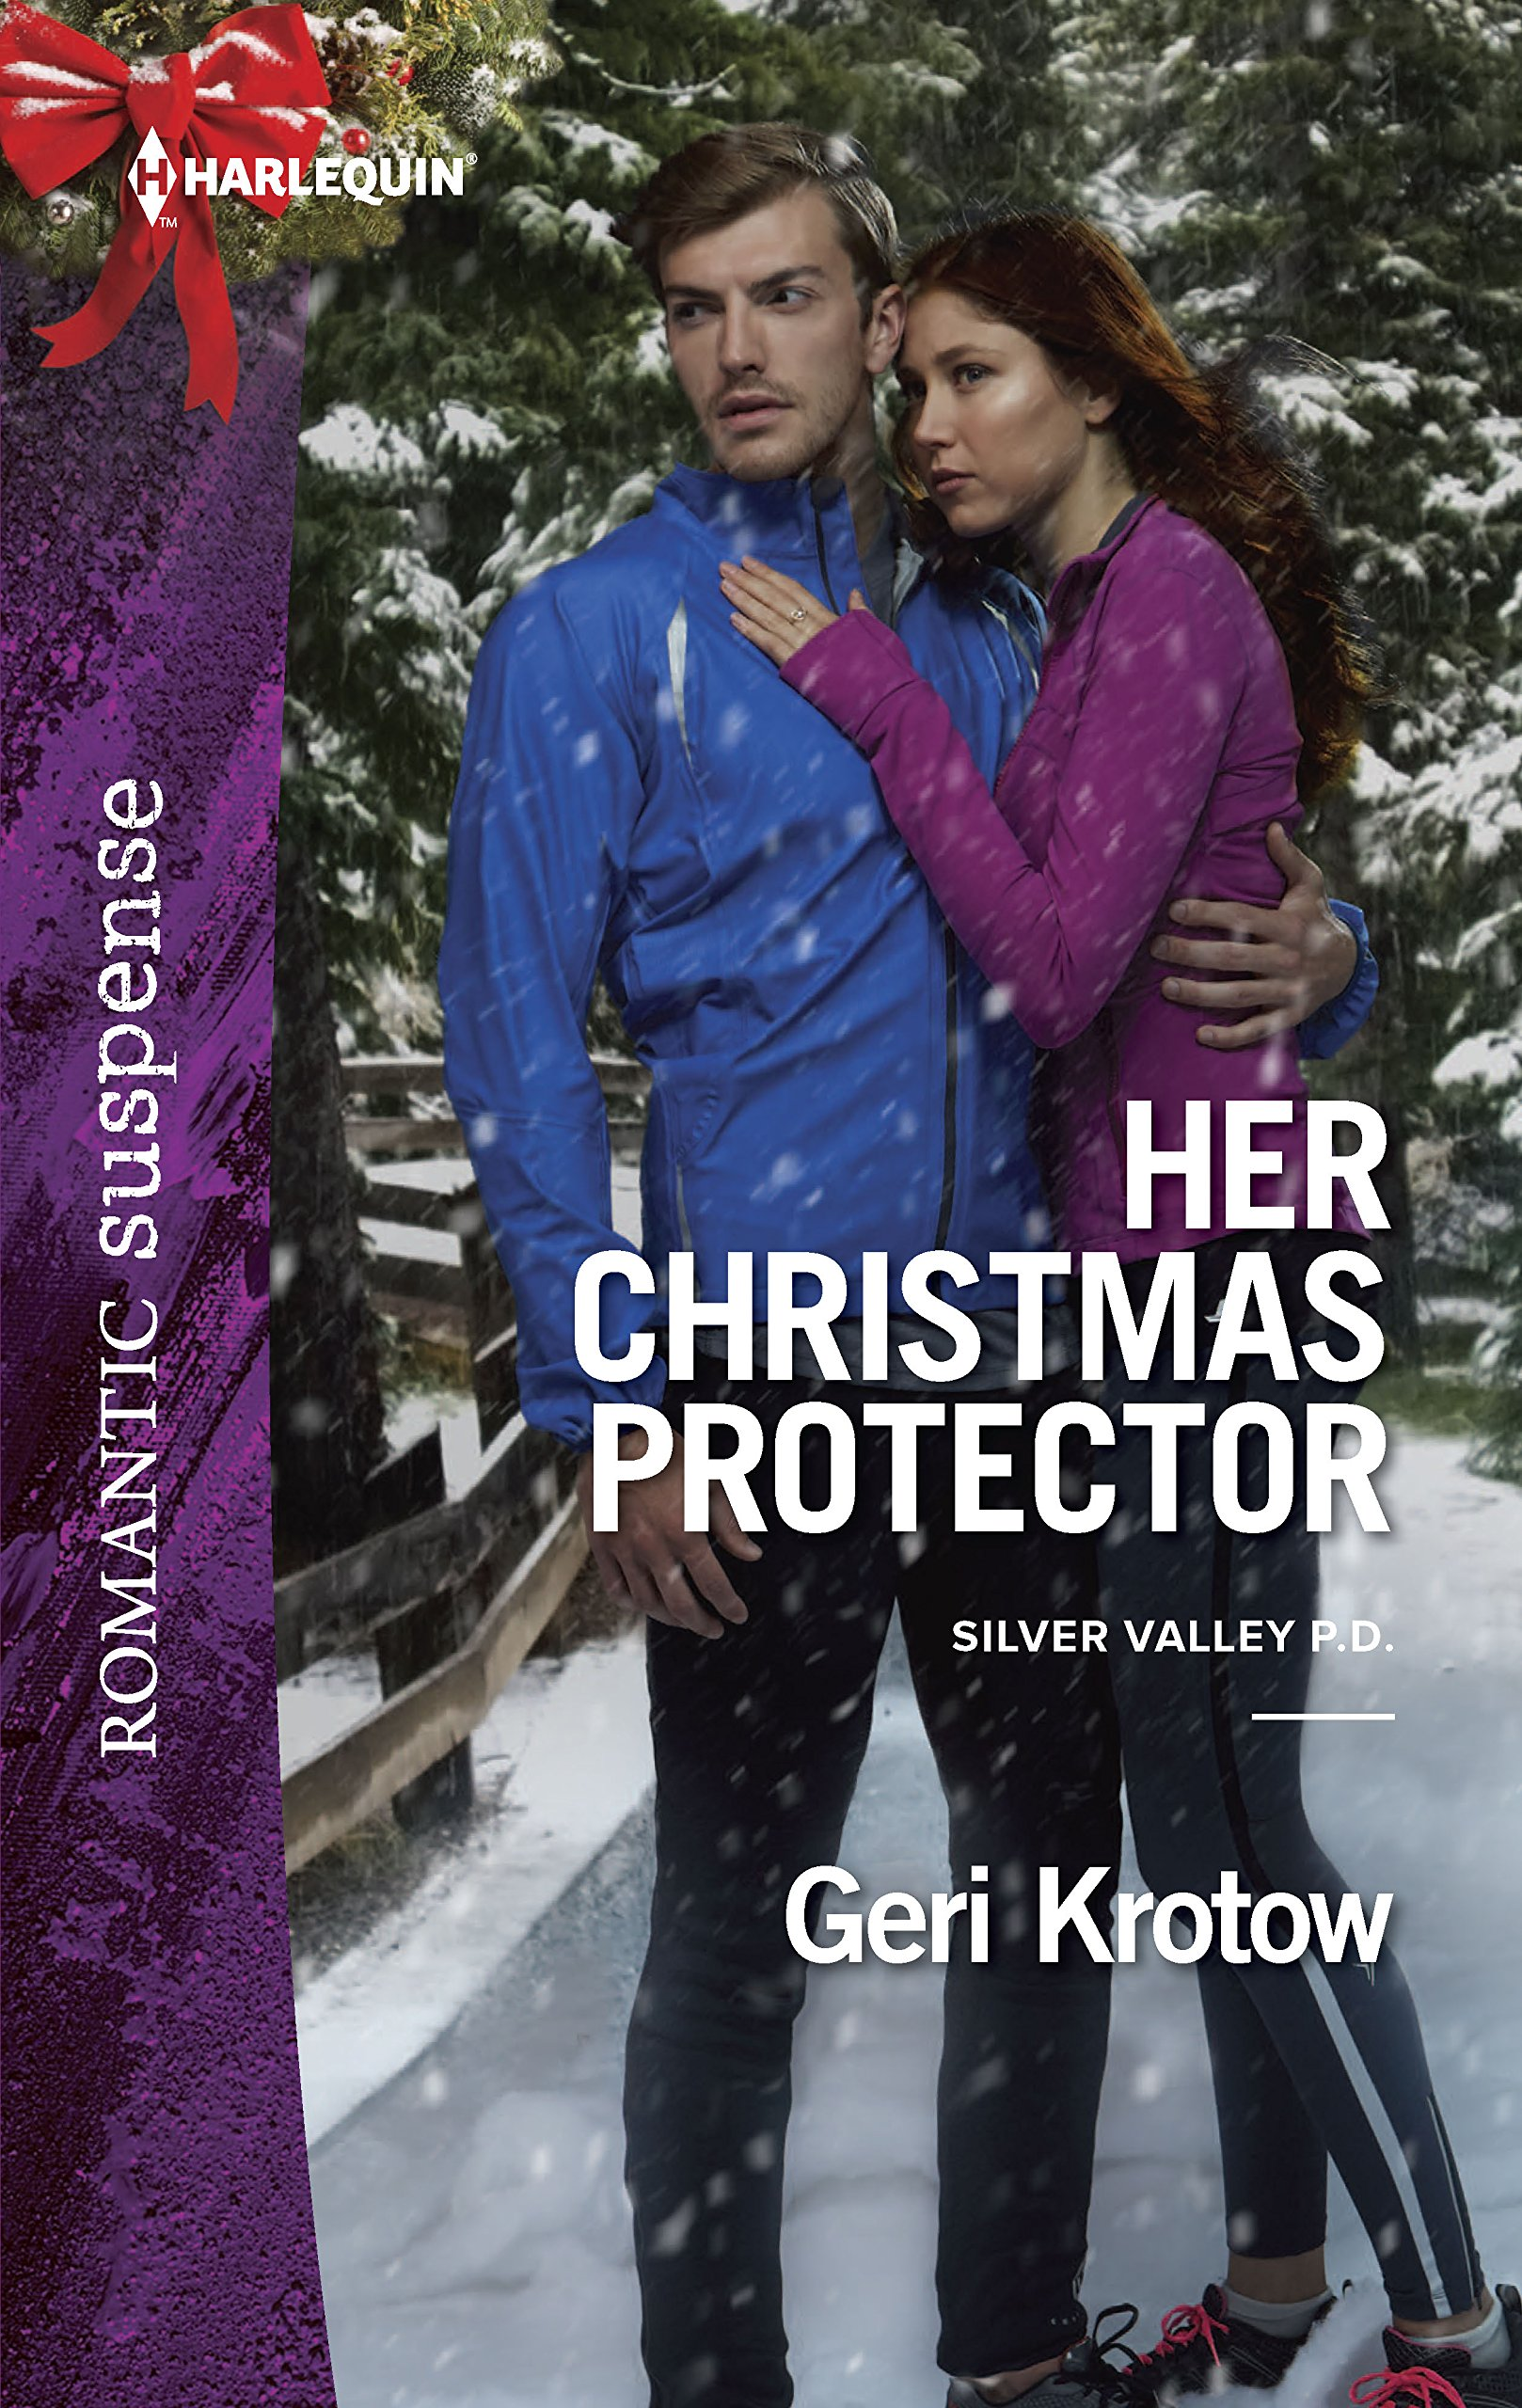 Download Her Christmas Protector (Silver Valley P.D.) pdf